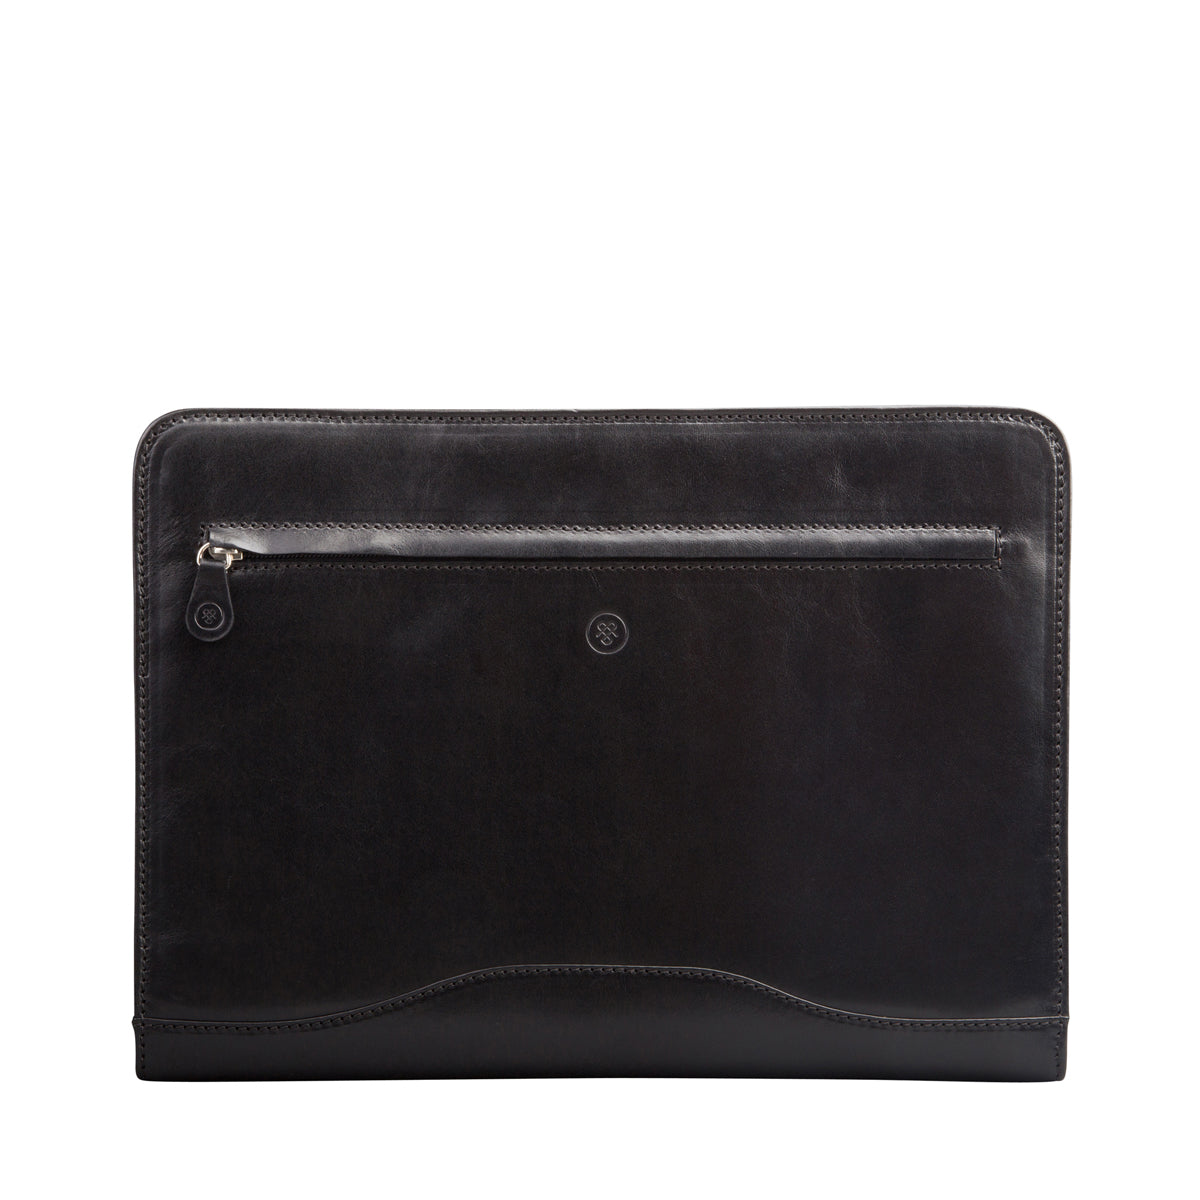 Image 1 of the 'Veroli' Black Leather Zipped Ring Binder